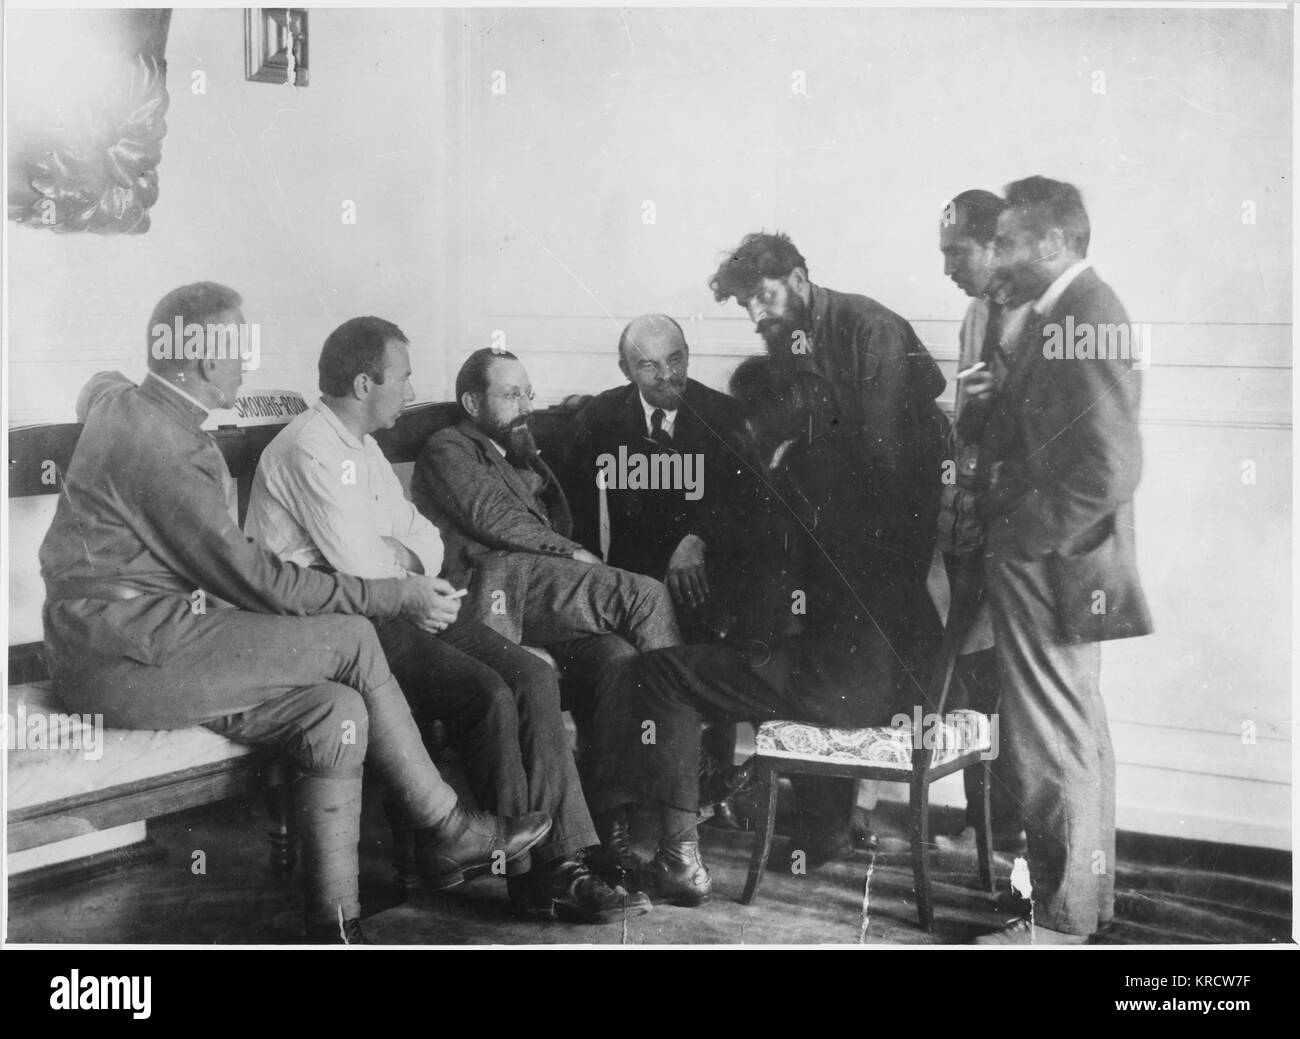 Lenin in conversation with members of the 2nd Congress of the Communist International (Comintern). Date: 1920 - Stock Image